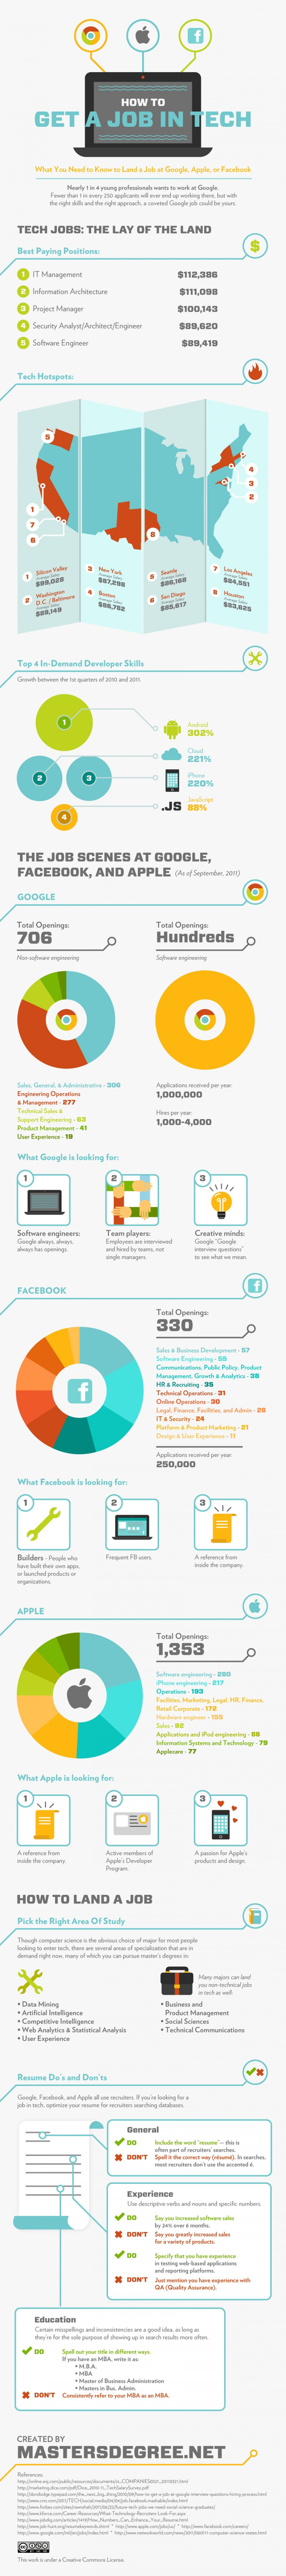 How to Get a Job in Tech Infographic